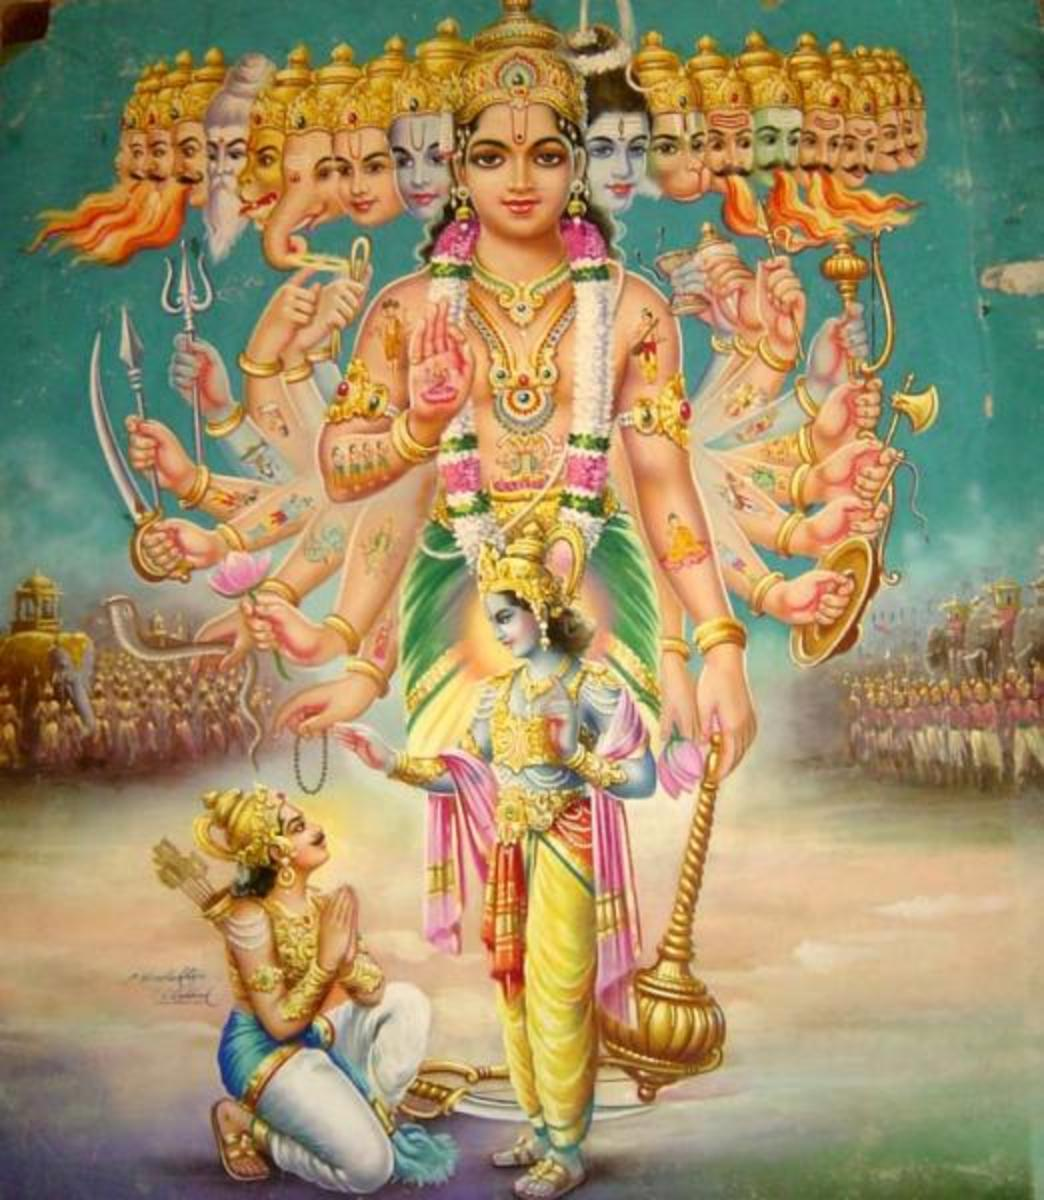 A key moment in the Bhagavad Gita: Krishna shows Arjuna his universal form (bazaar art by C. Konddiah Raja, c.1950's)